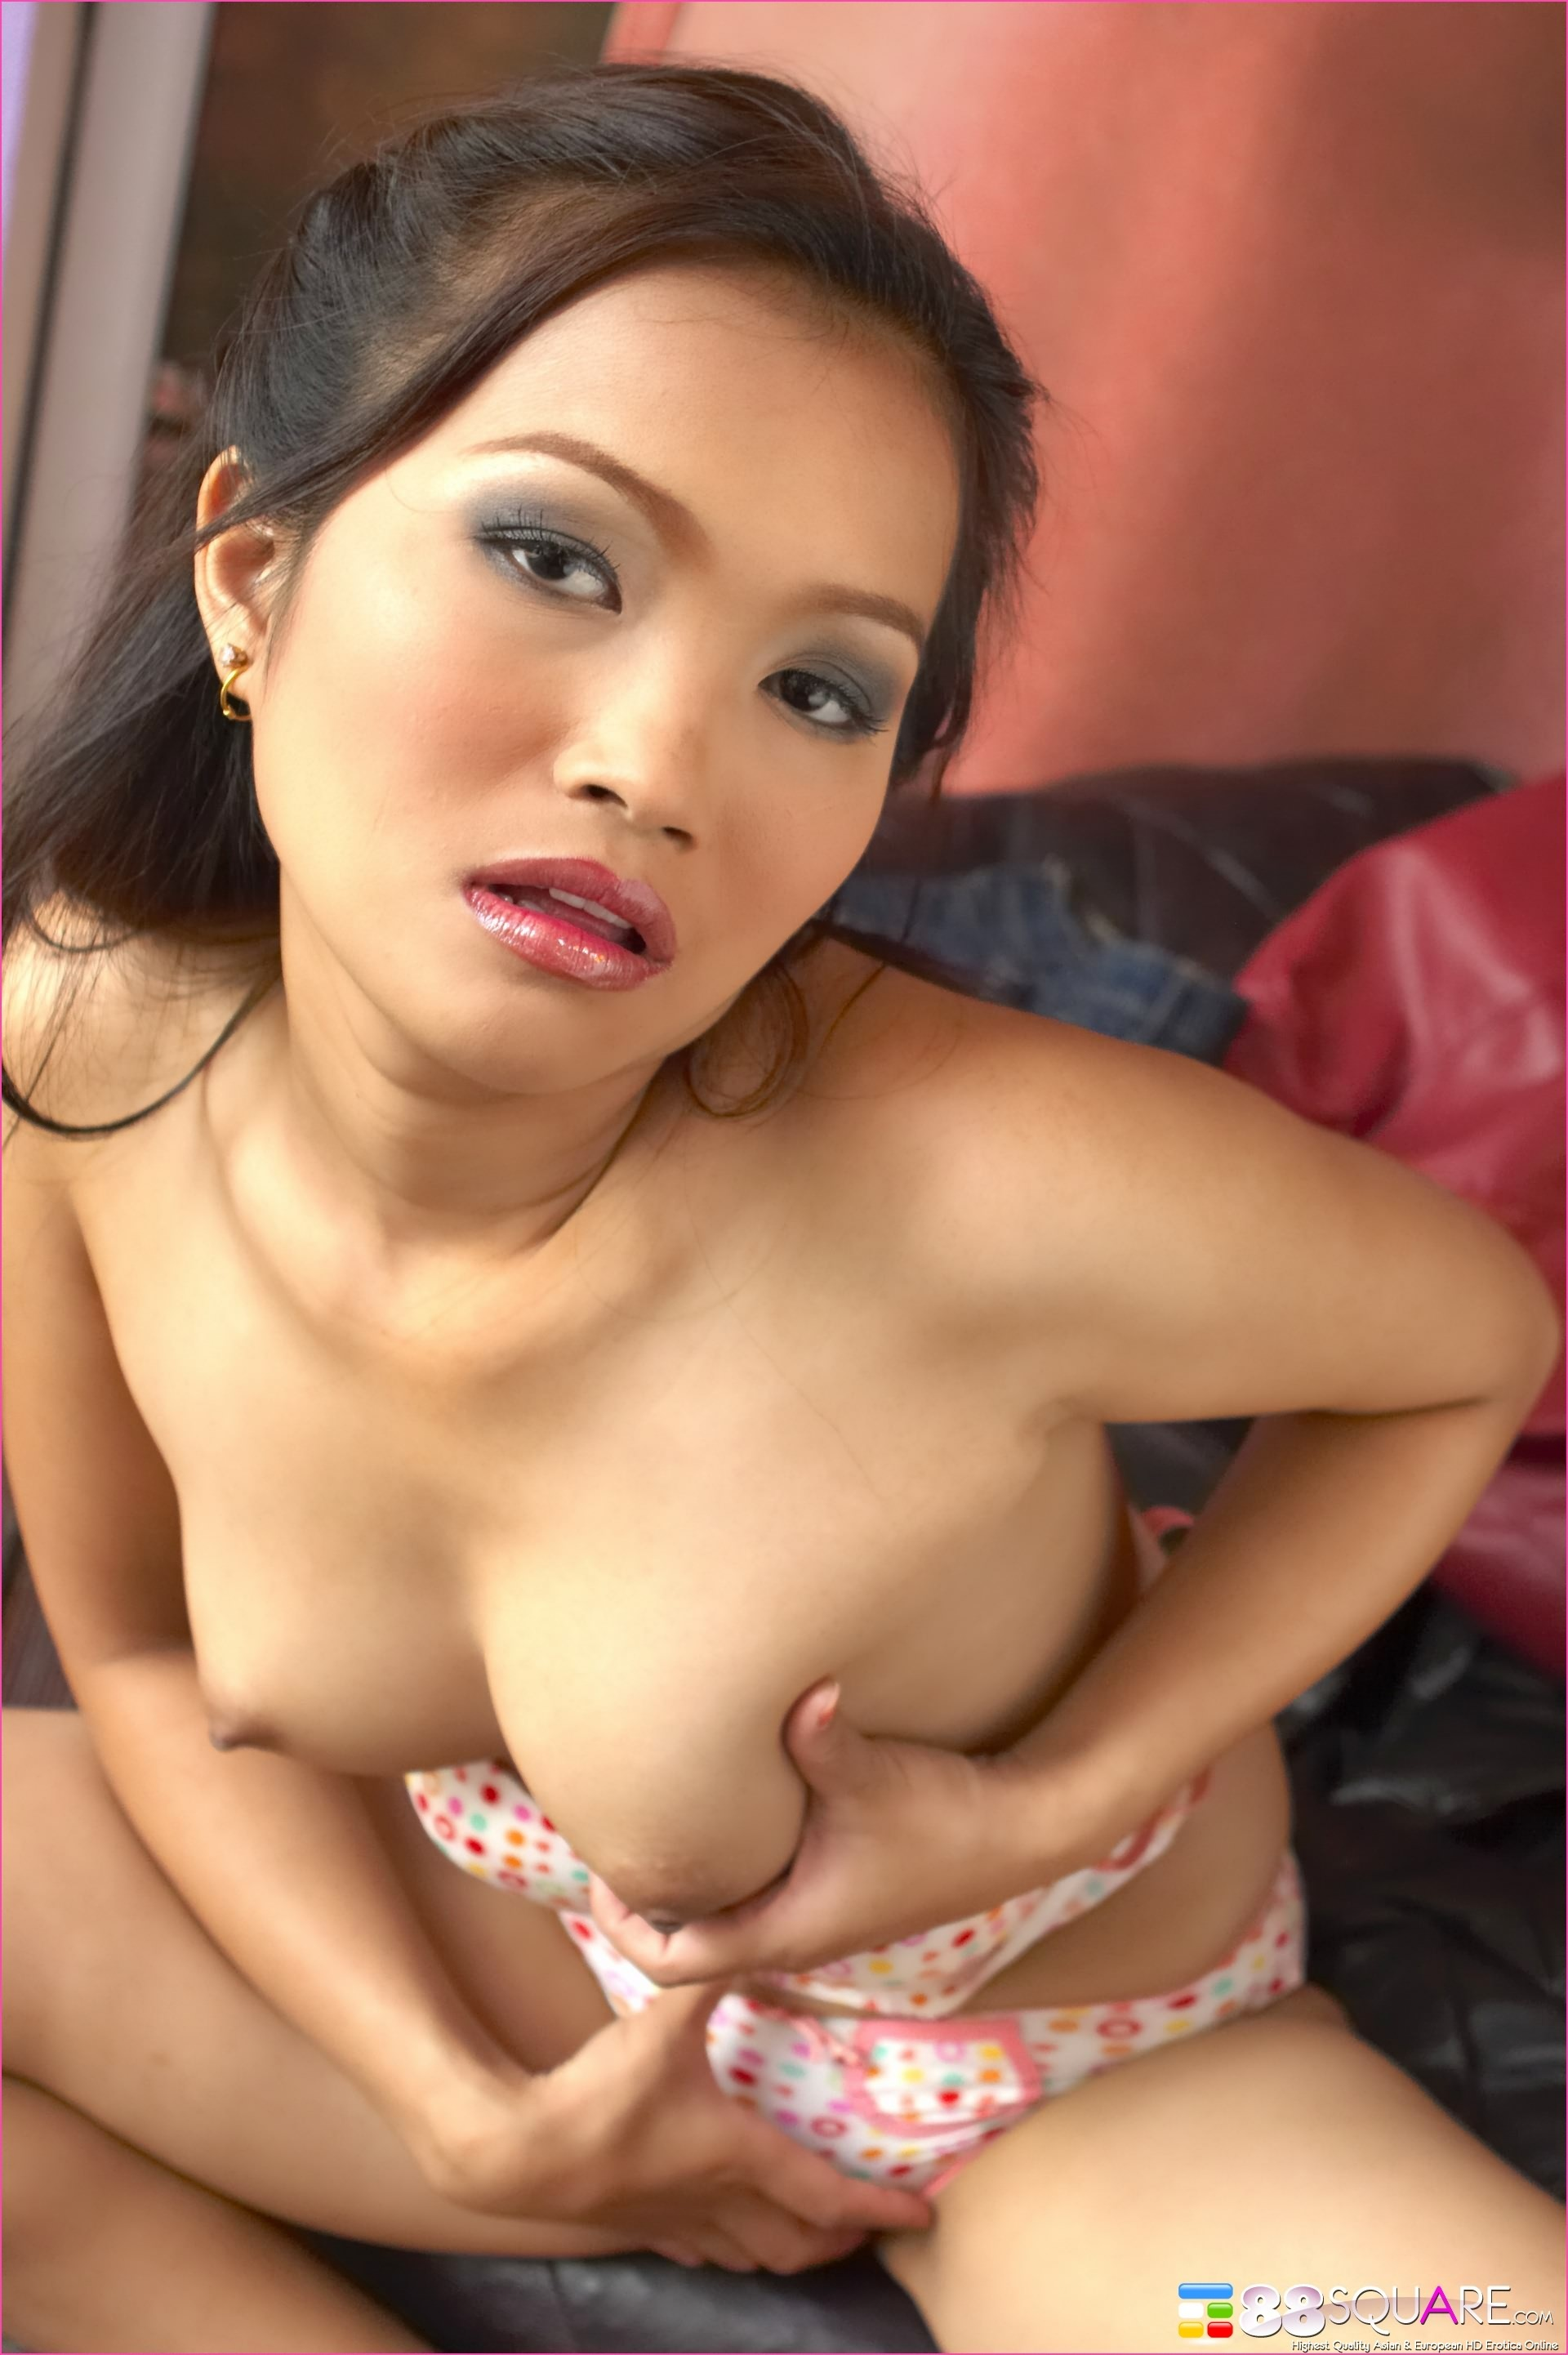 pussy knees asian images Hairy up